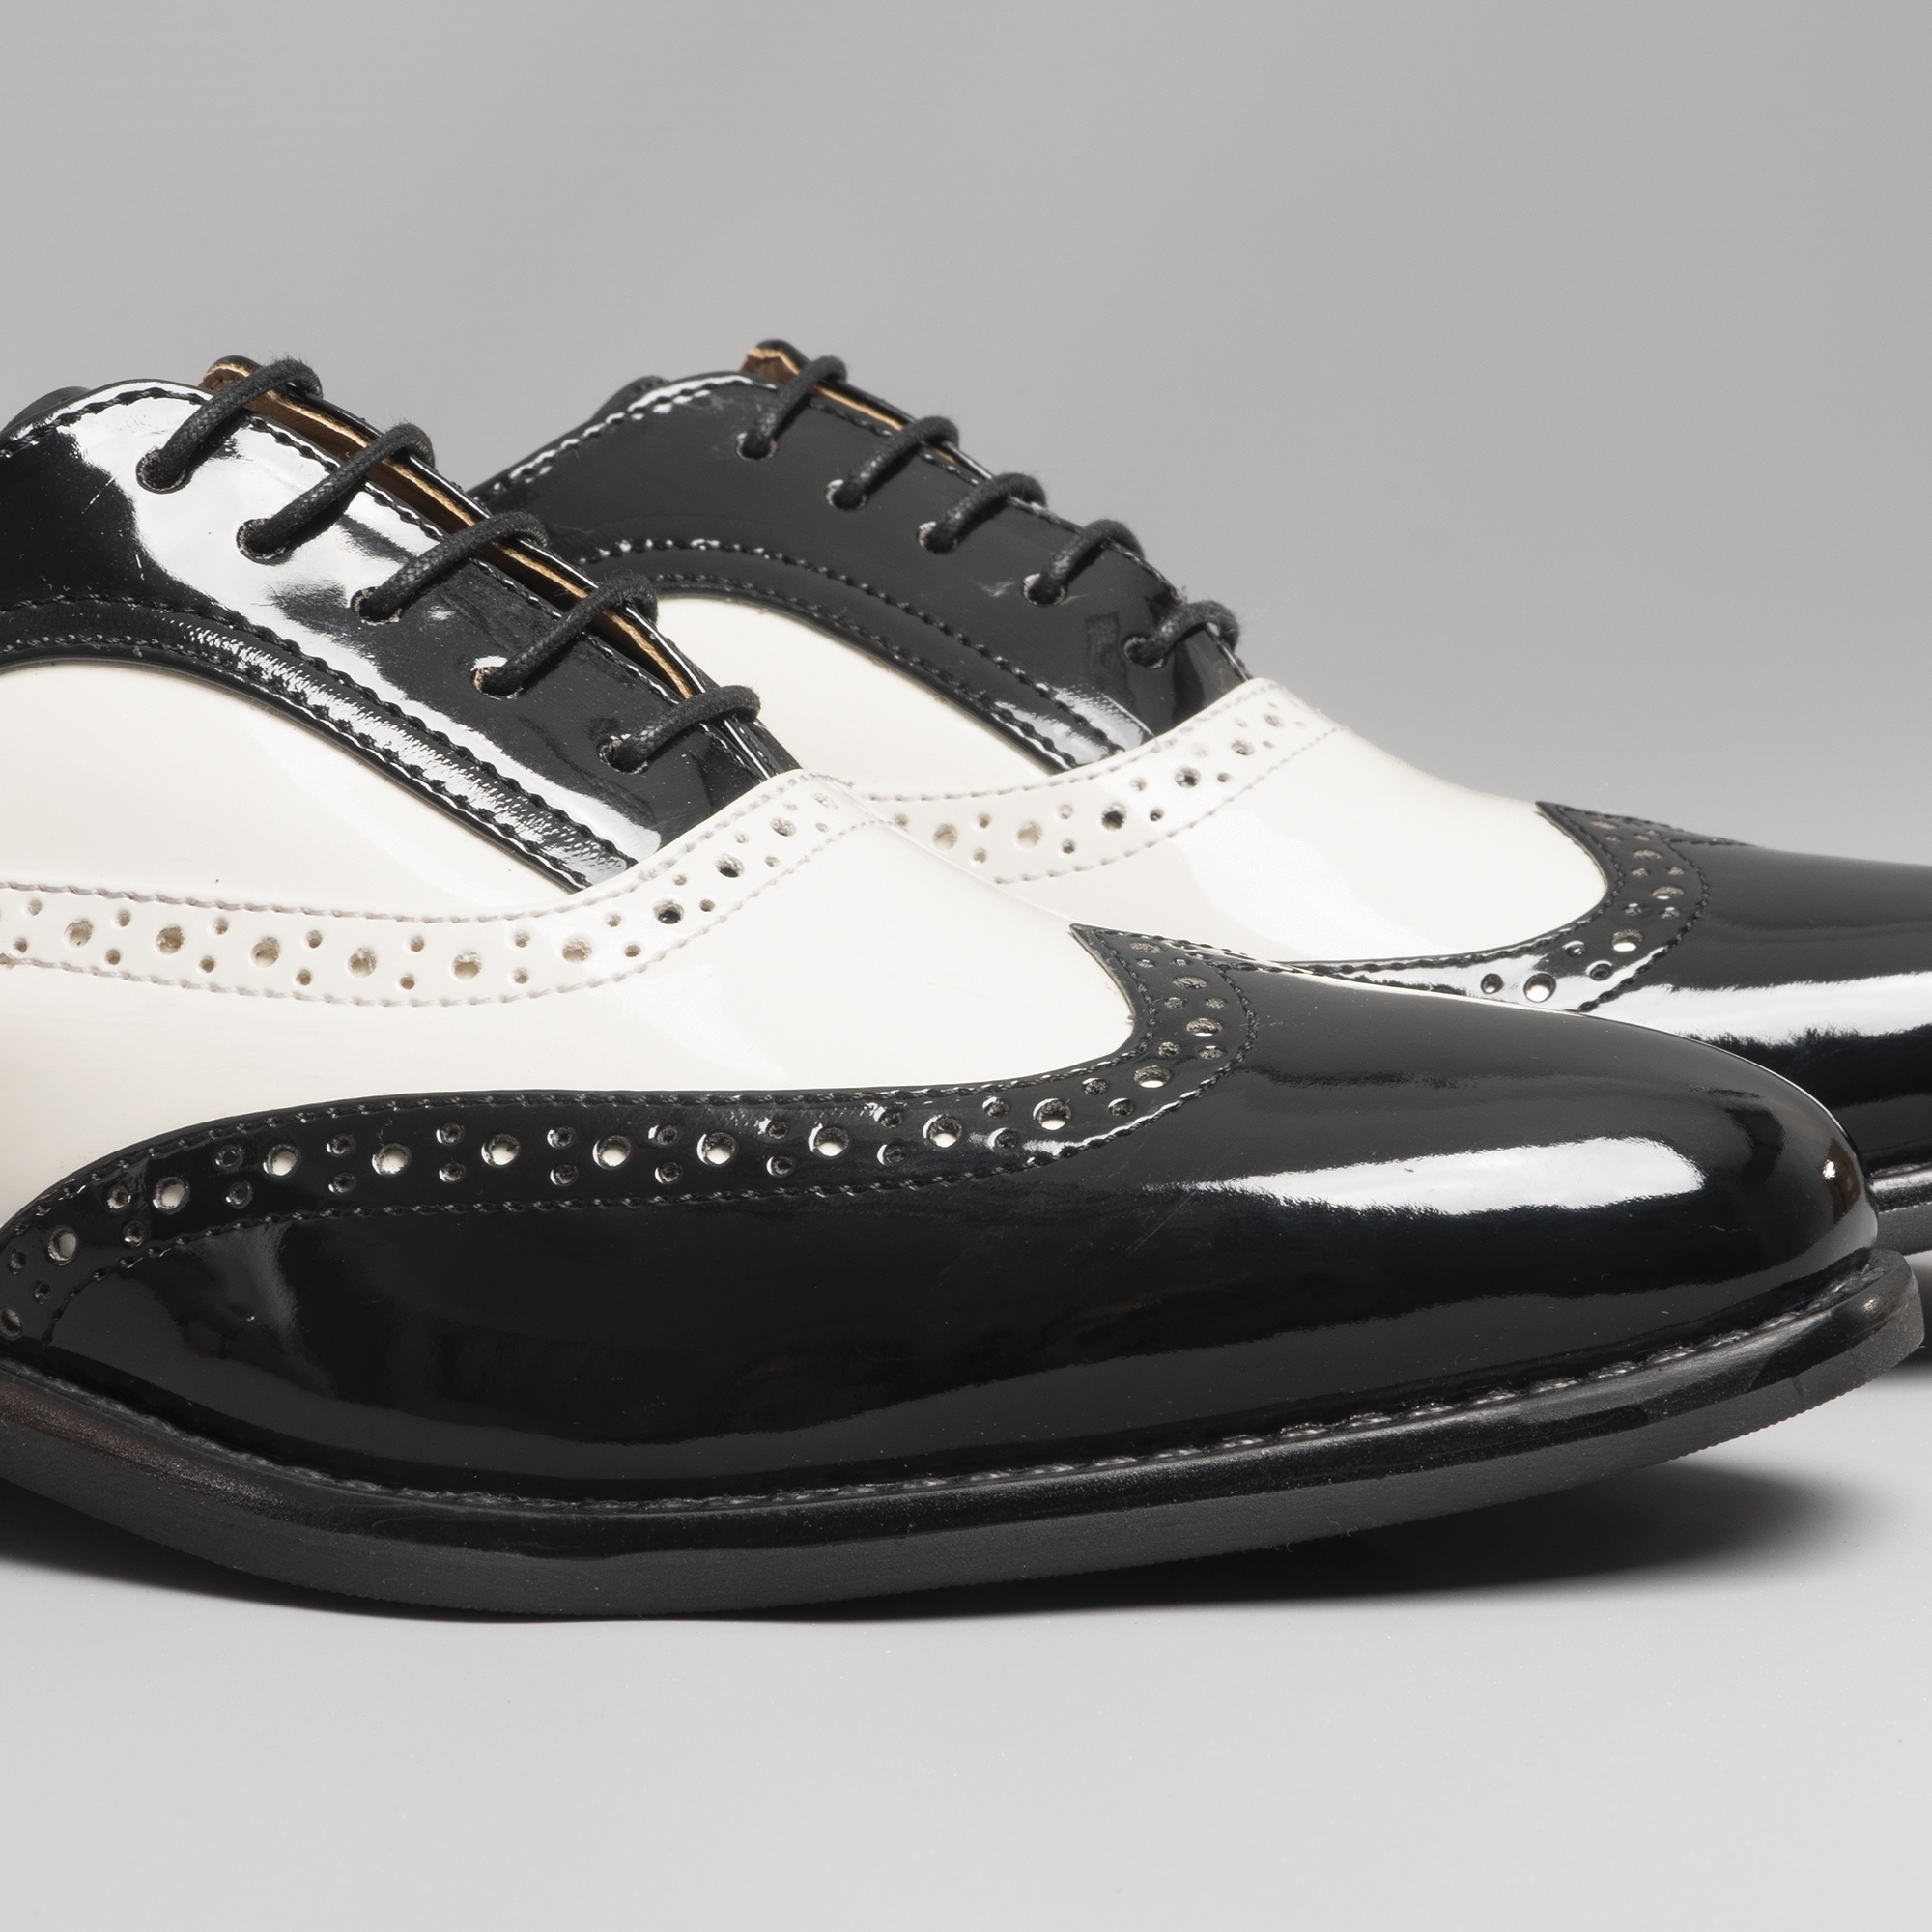 Details about Mister Carlo BAGGIO Mens Faux Patent Leather Smart Semi Brogue Lace Up Shoes